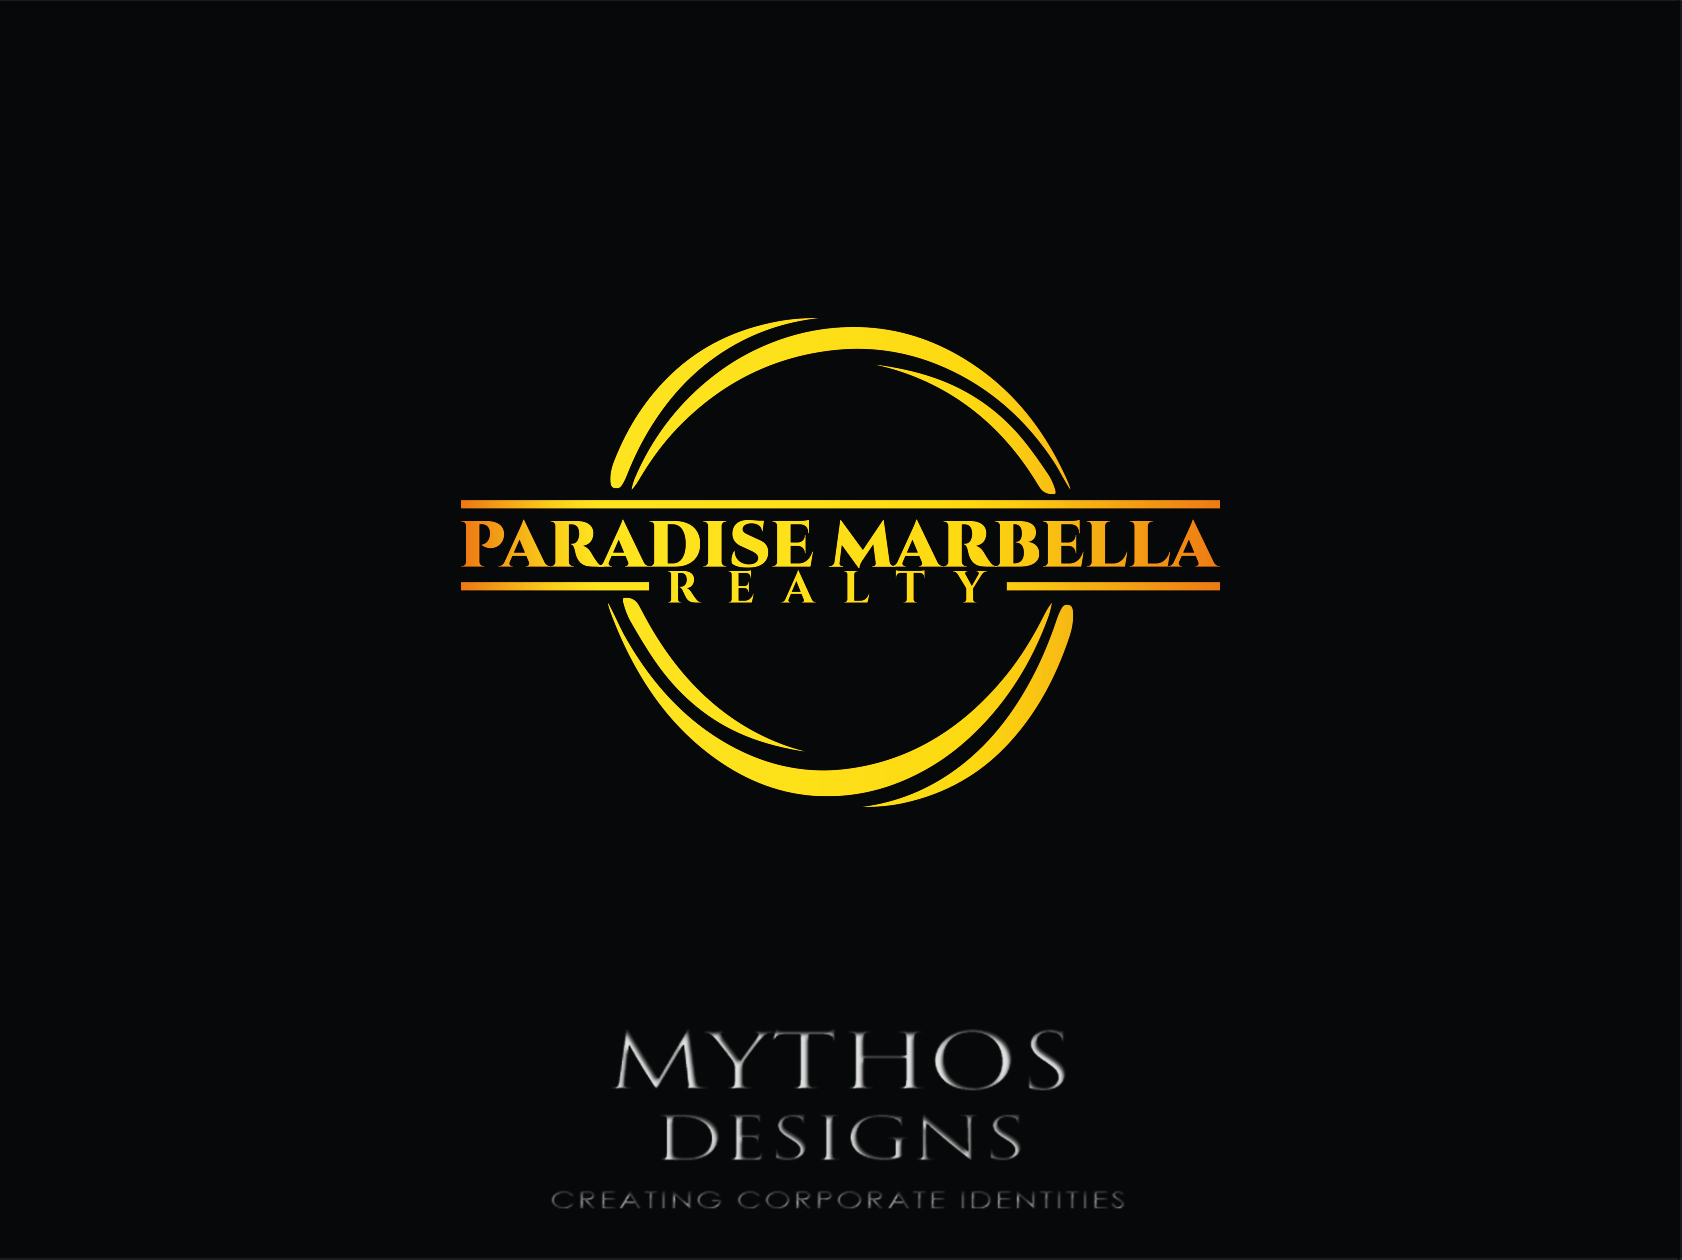 Logo Design by Mythos Designs - Entry No. 87 in the Logo Design Contest Captivating Logo Design for Paradise Marbella Realty.